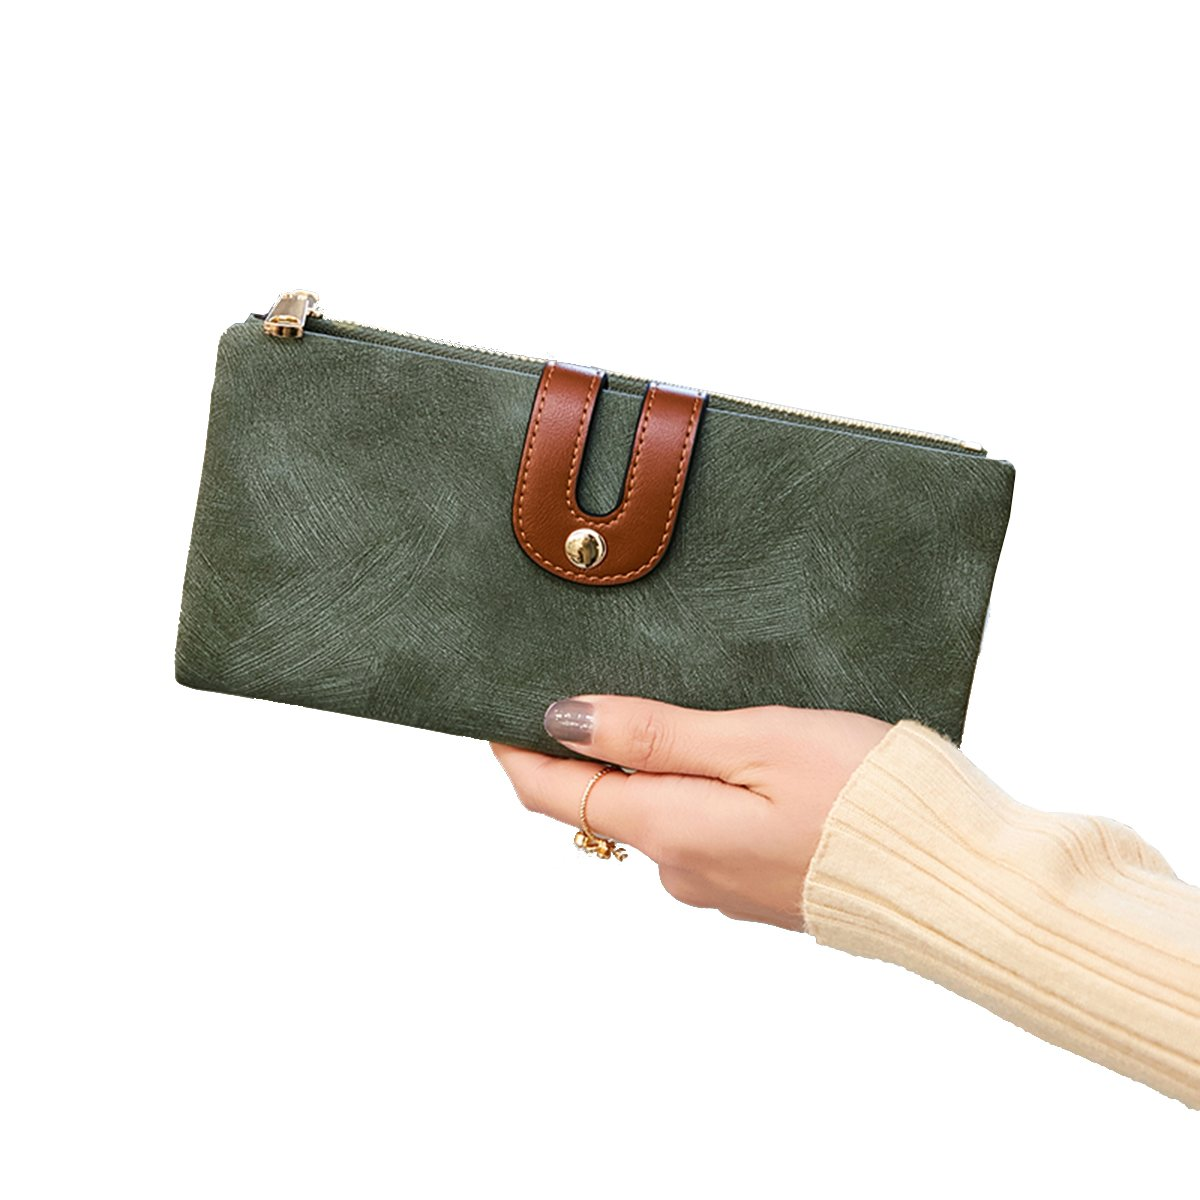 Women's RFID Bifold Leather Wallet Ladies Mini Purse with Small Zipper Pocket,Soft Compact Thin Wallet